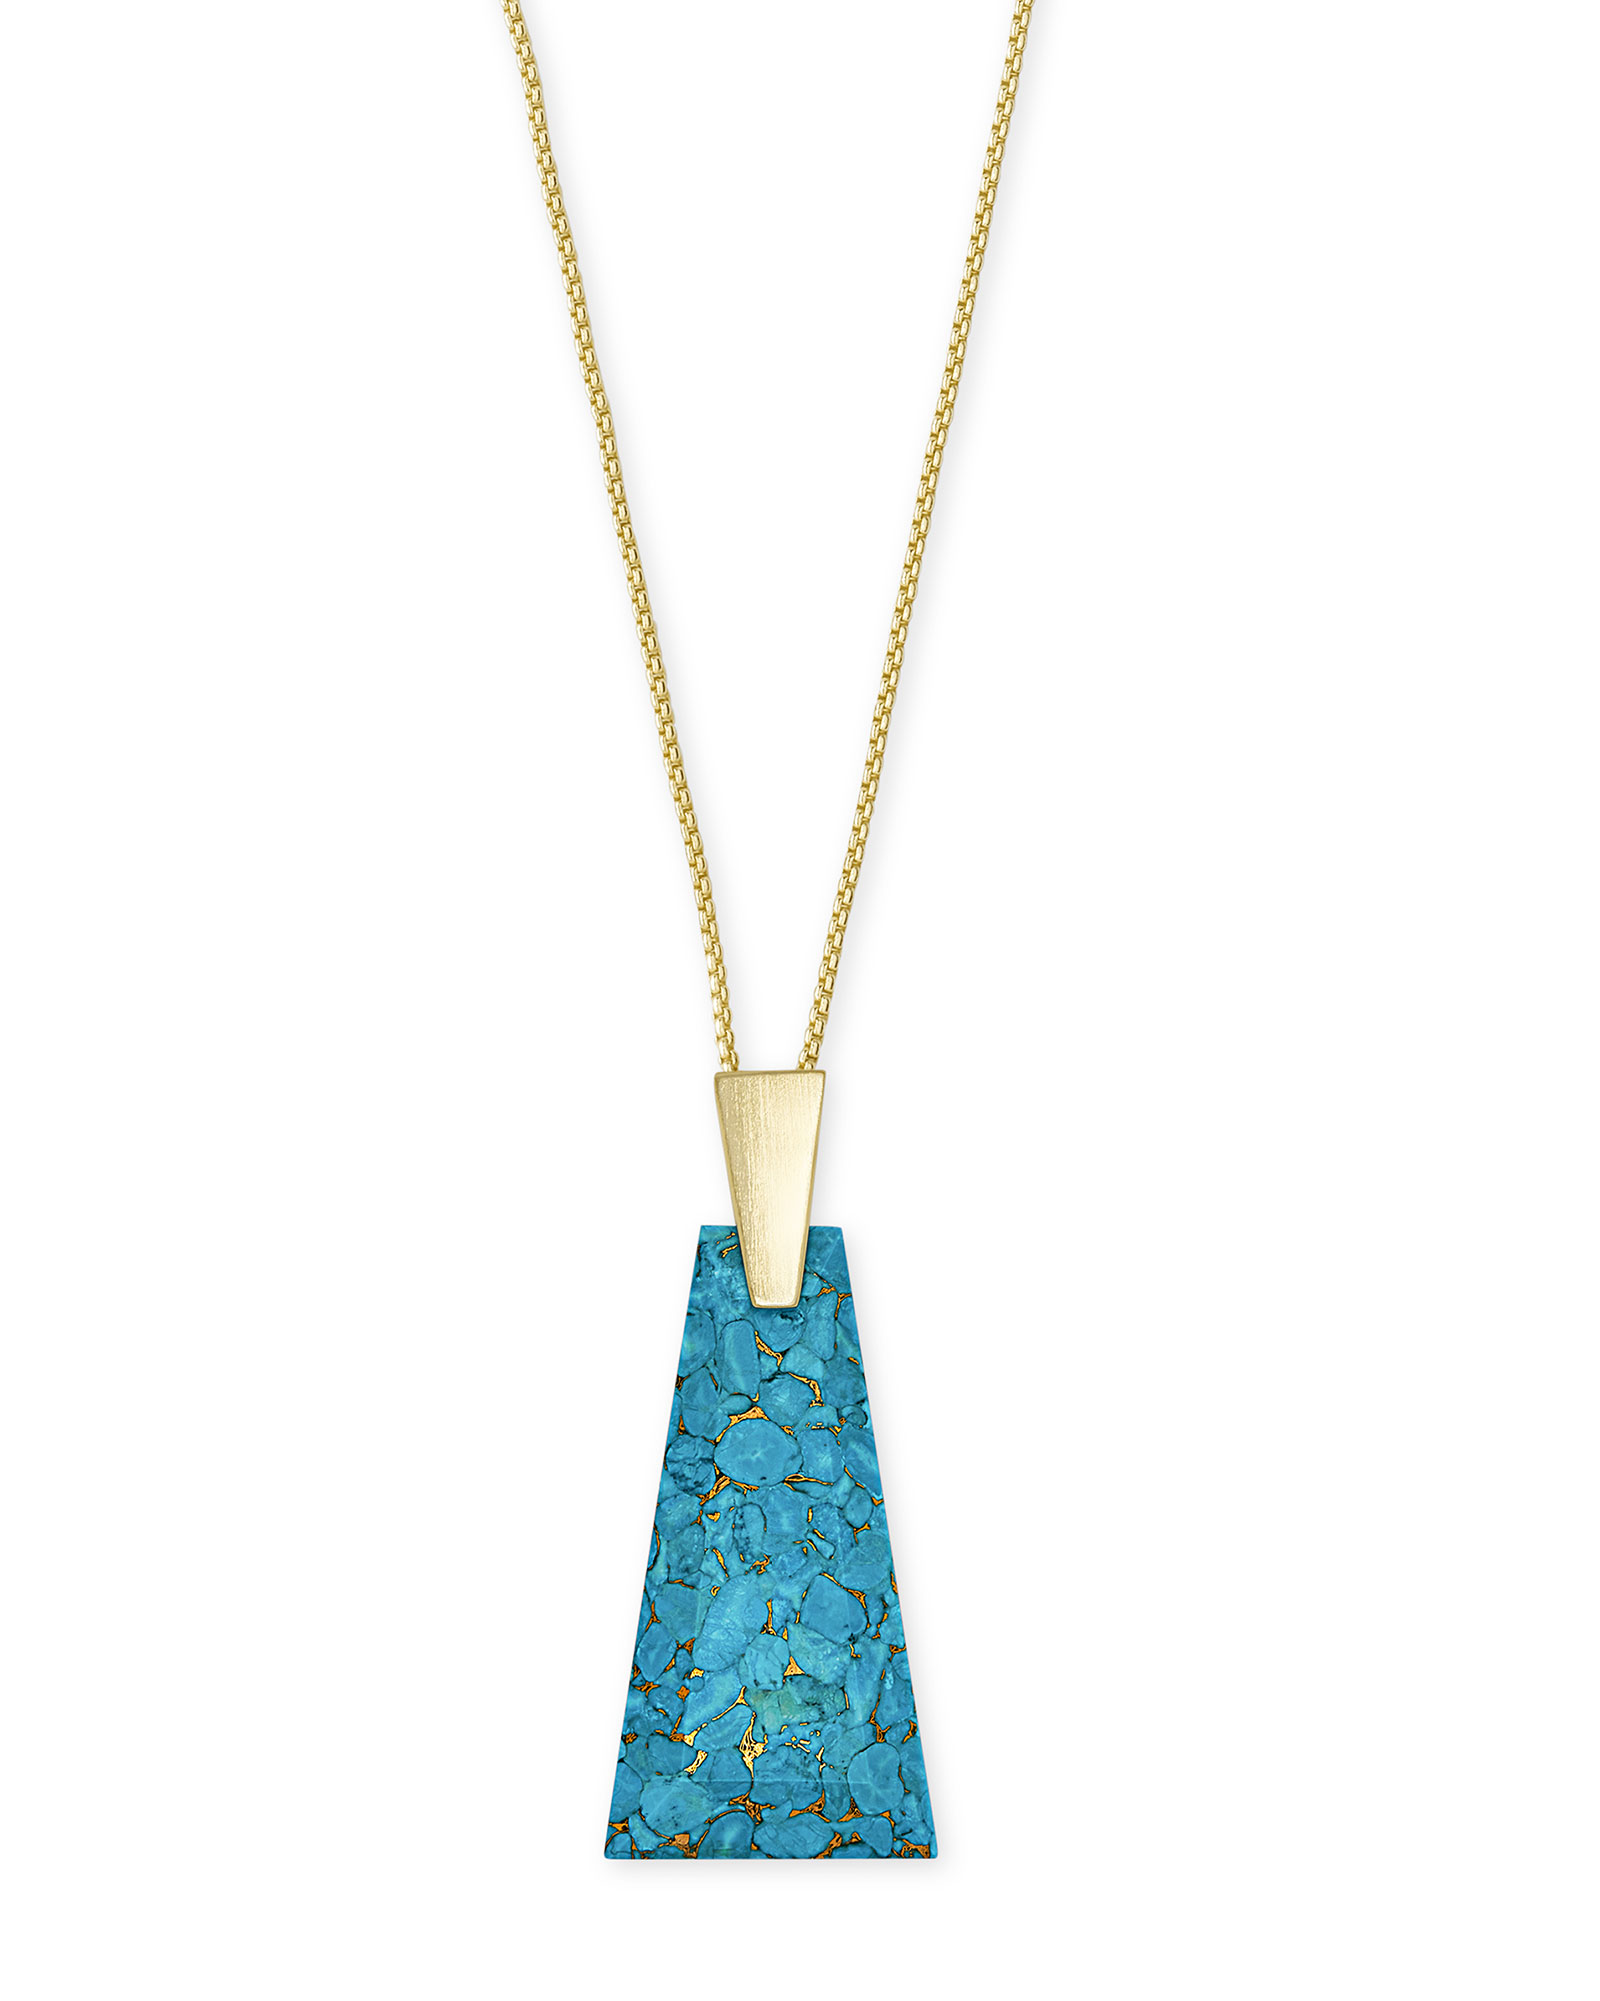 Collins Gold Long Pendant Necklace in Bronze Veined Turquoise Magnesite